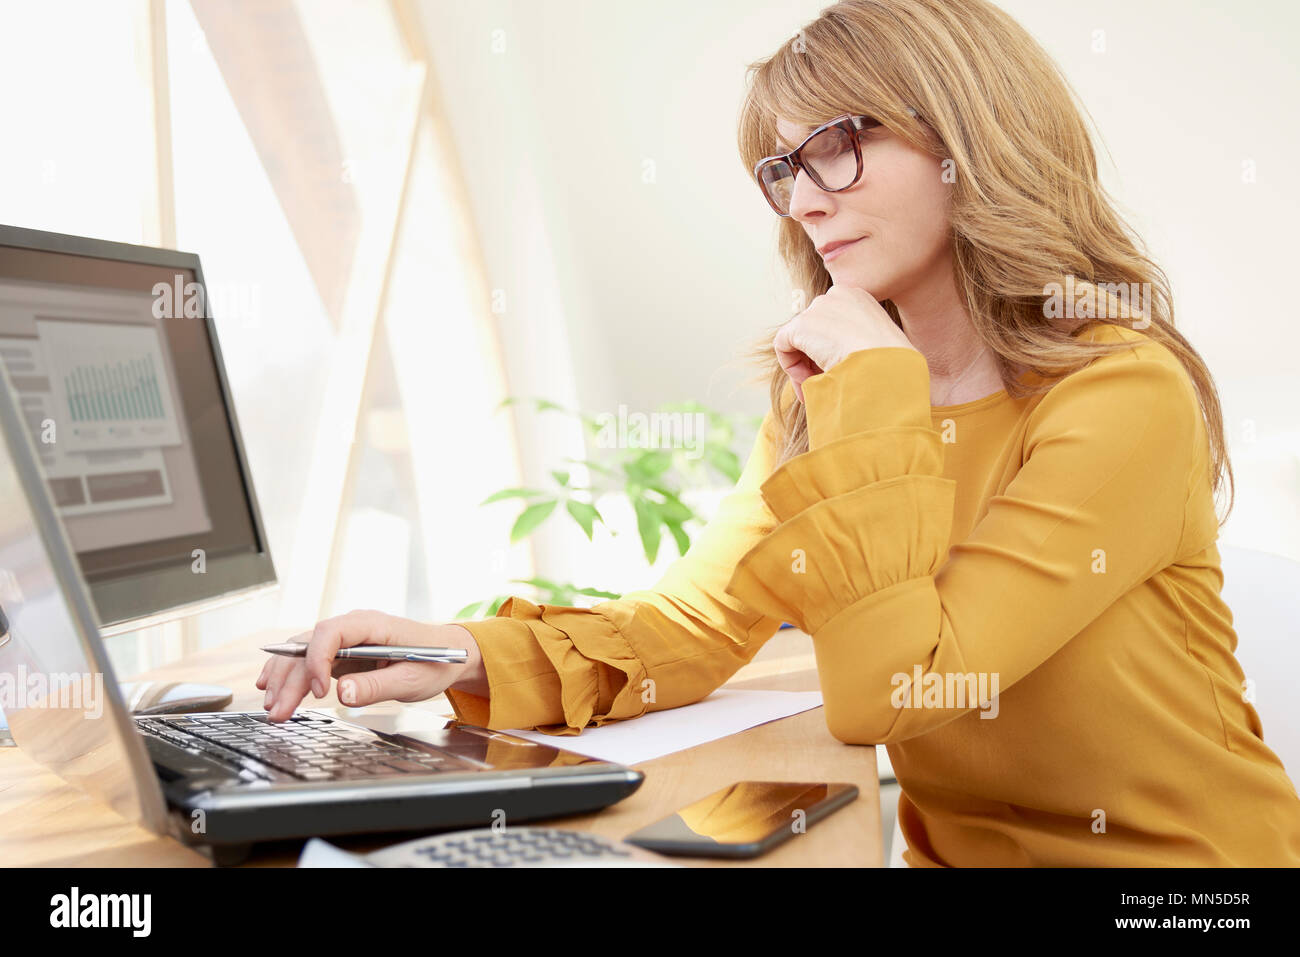 Middle aged casual investment advisor businesswoman working on laptop while sitting at office desk. - Stock Image